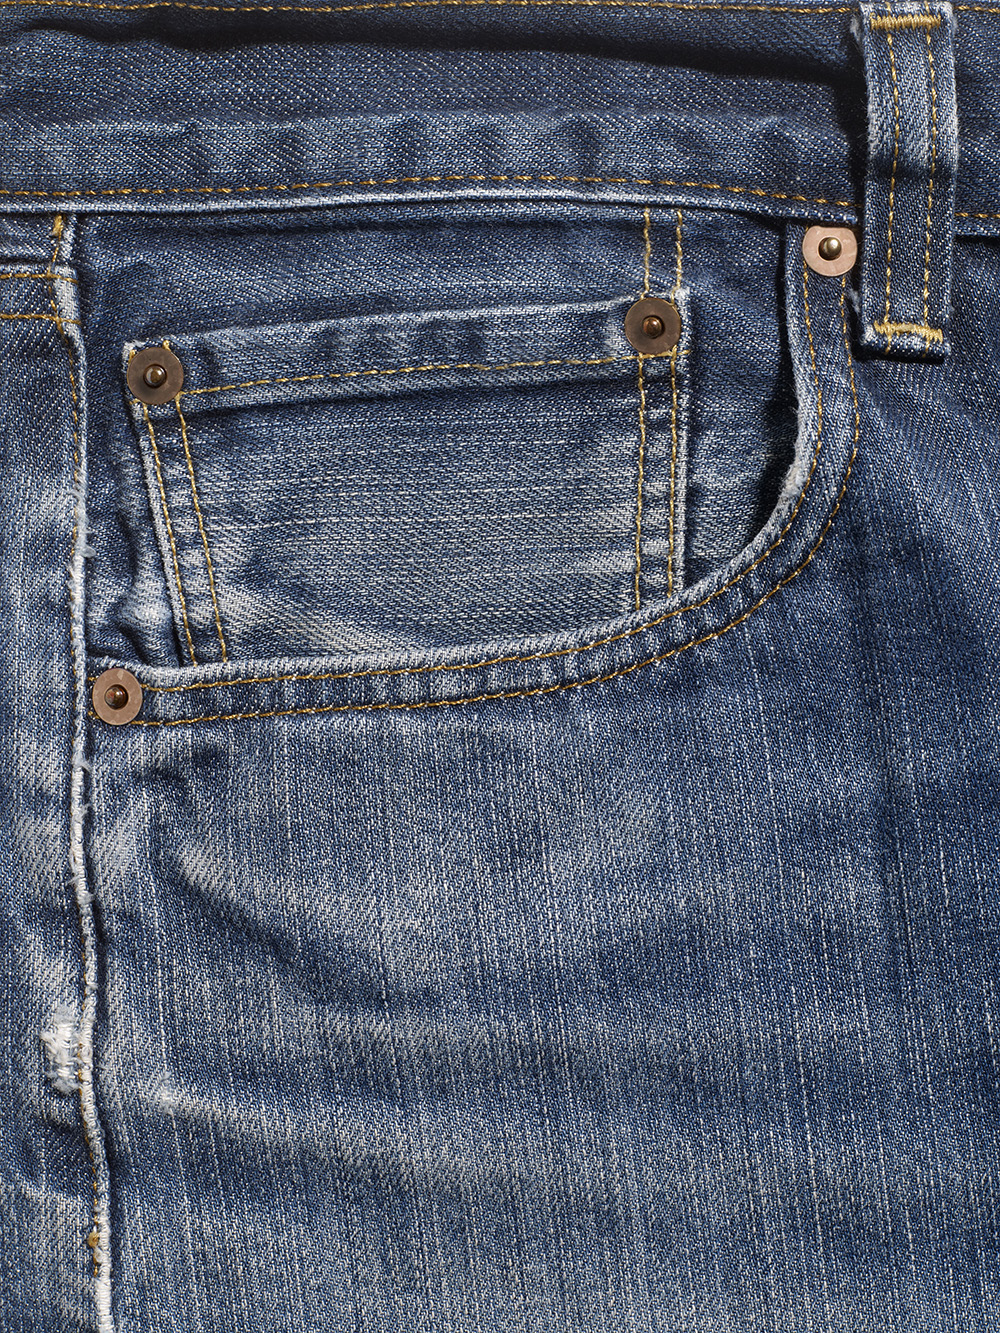 So that's what the tiny pocket in your jeans is for